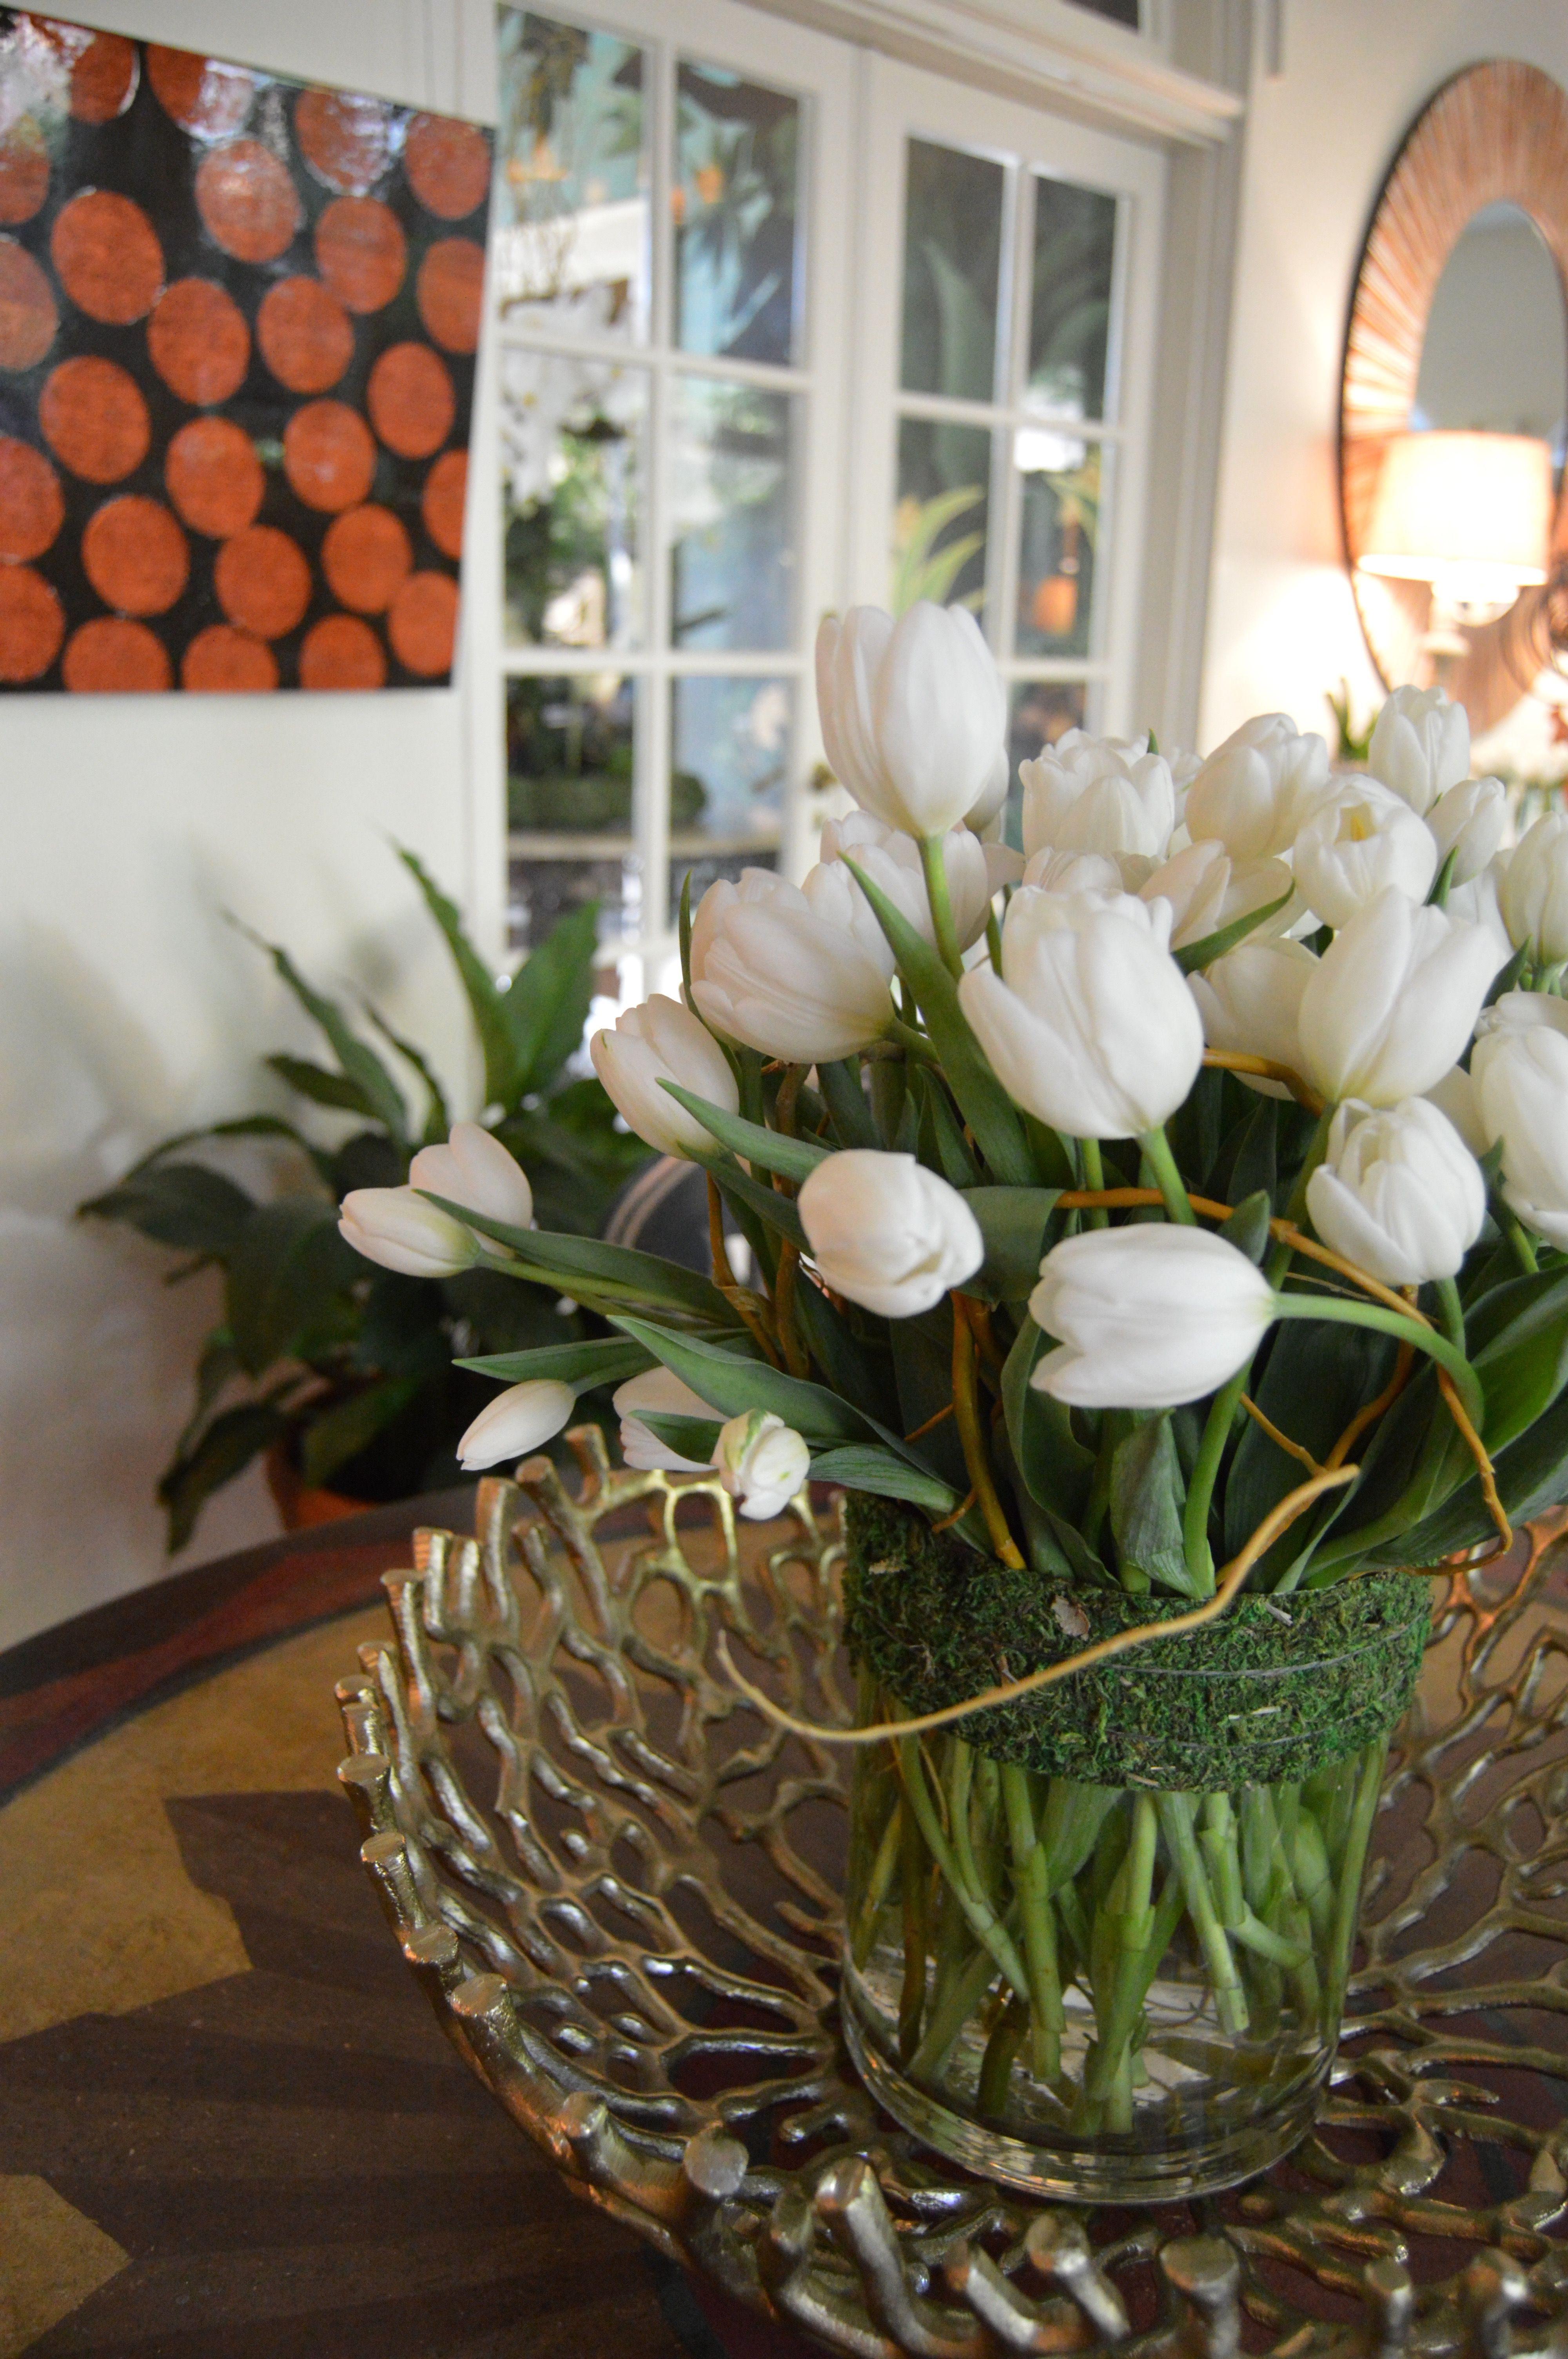 Clean design with all white tulips. So fresh, so Spring.